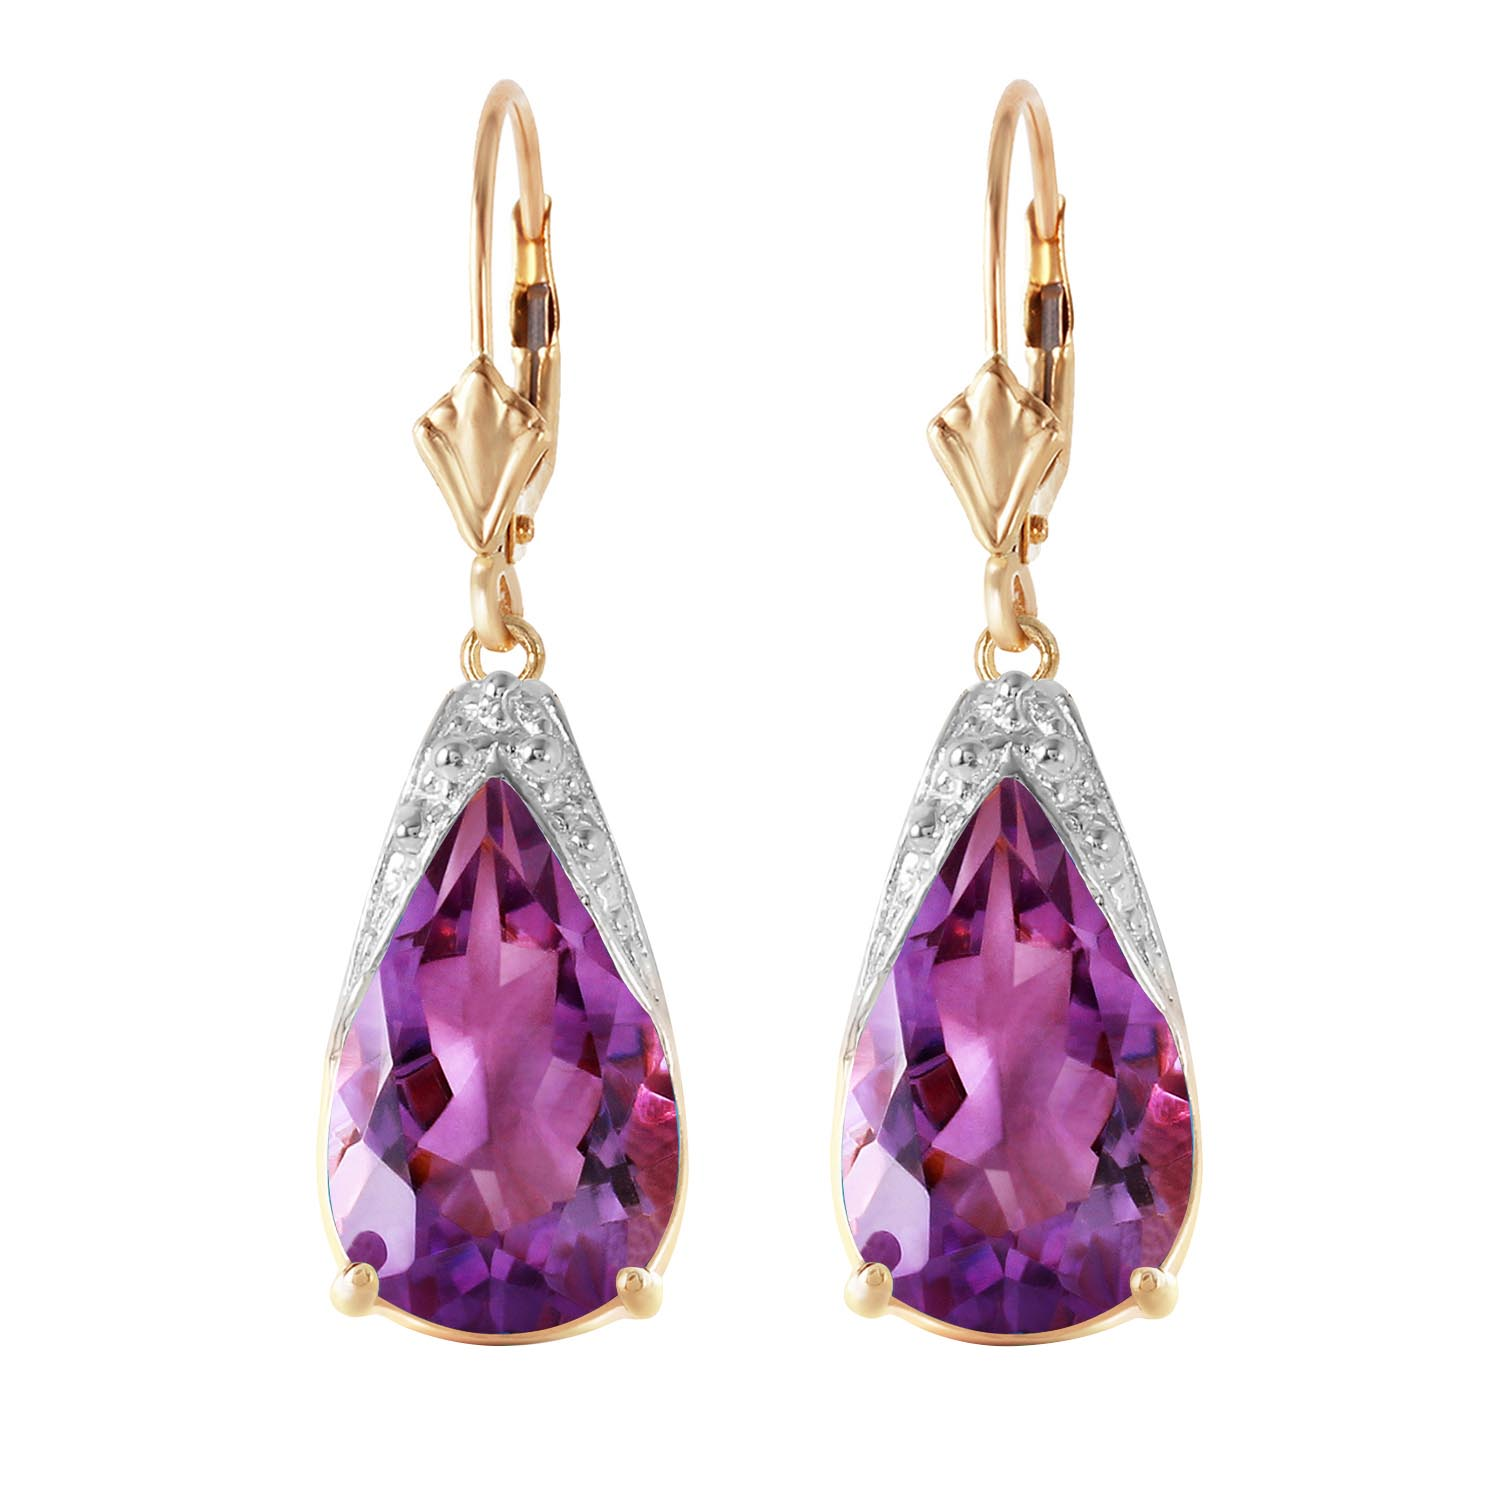 Amethyst Snowcap Drop Earrings 10.0ctw in 9ct Gold